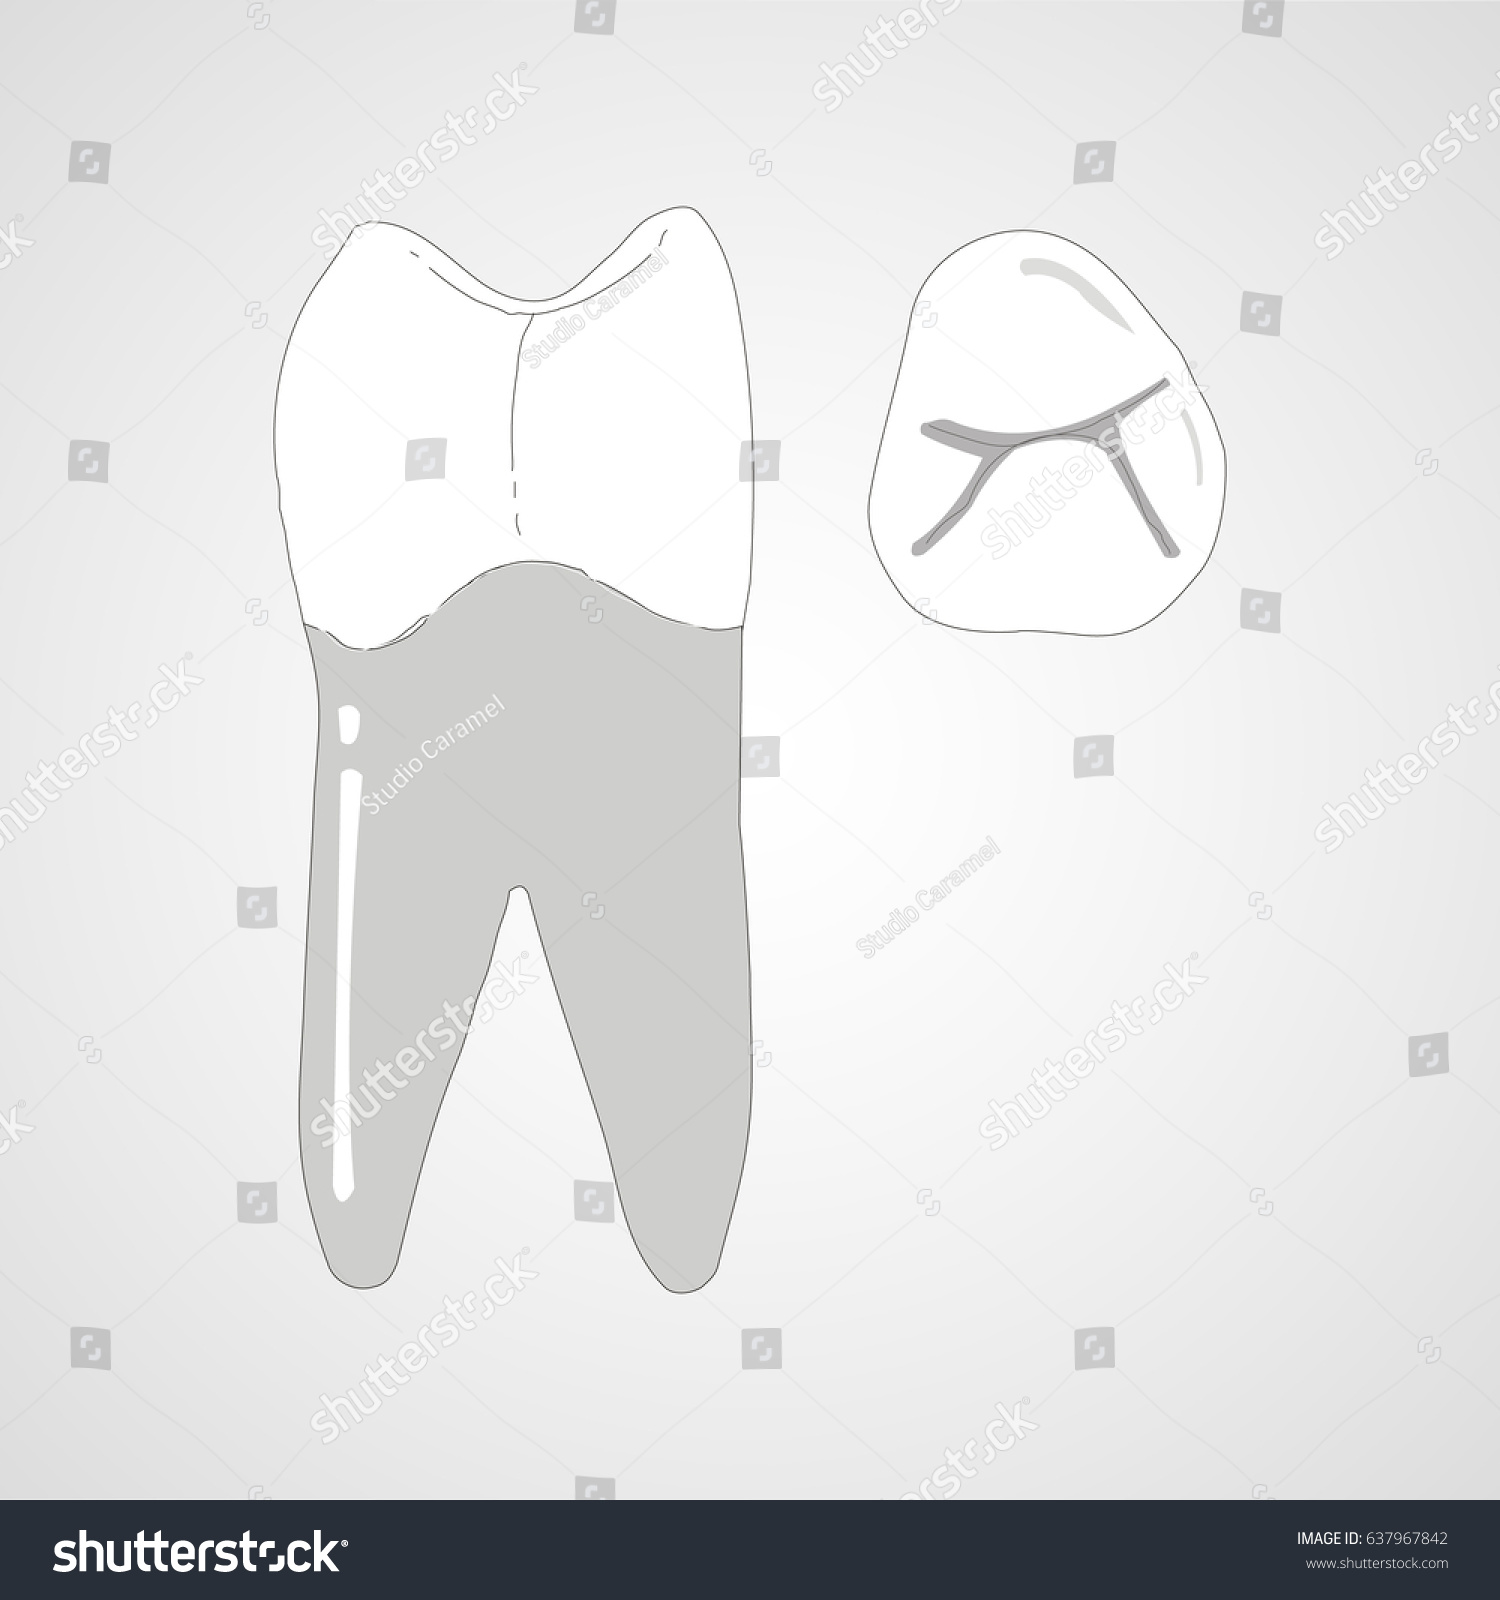 Canine Tooth Anatomy Treatment Stock Vector Royalty Free 637967842